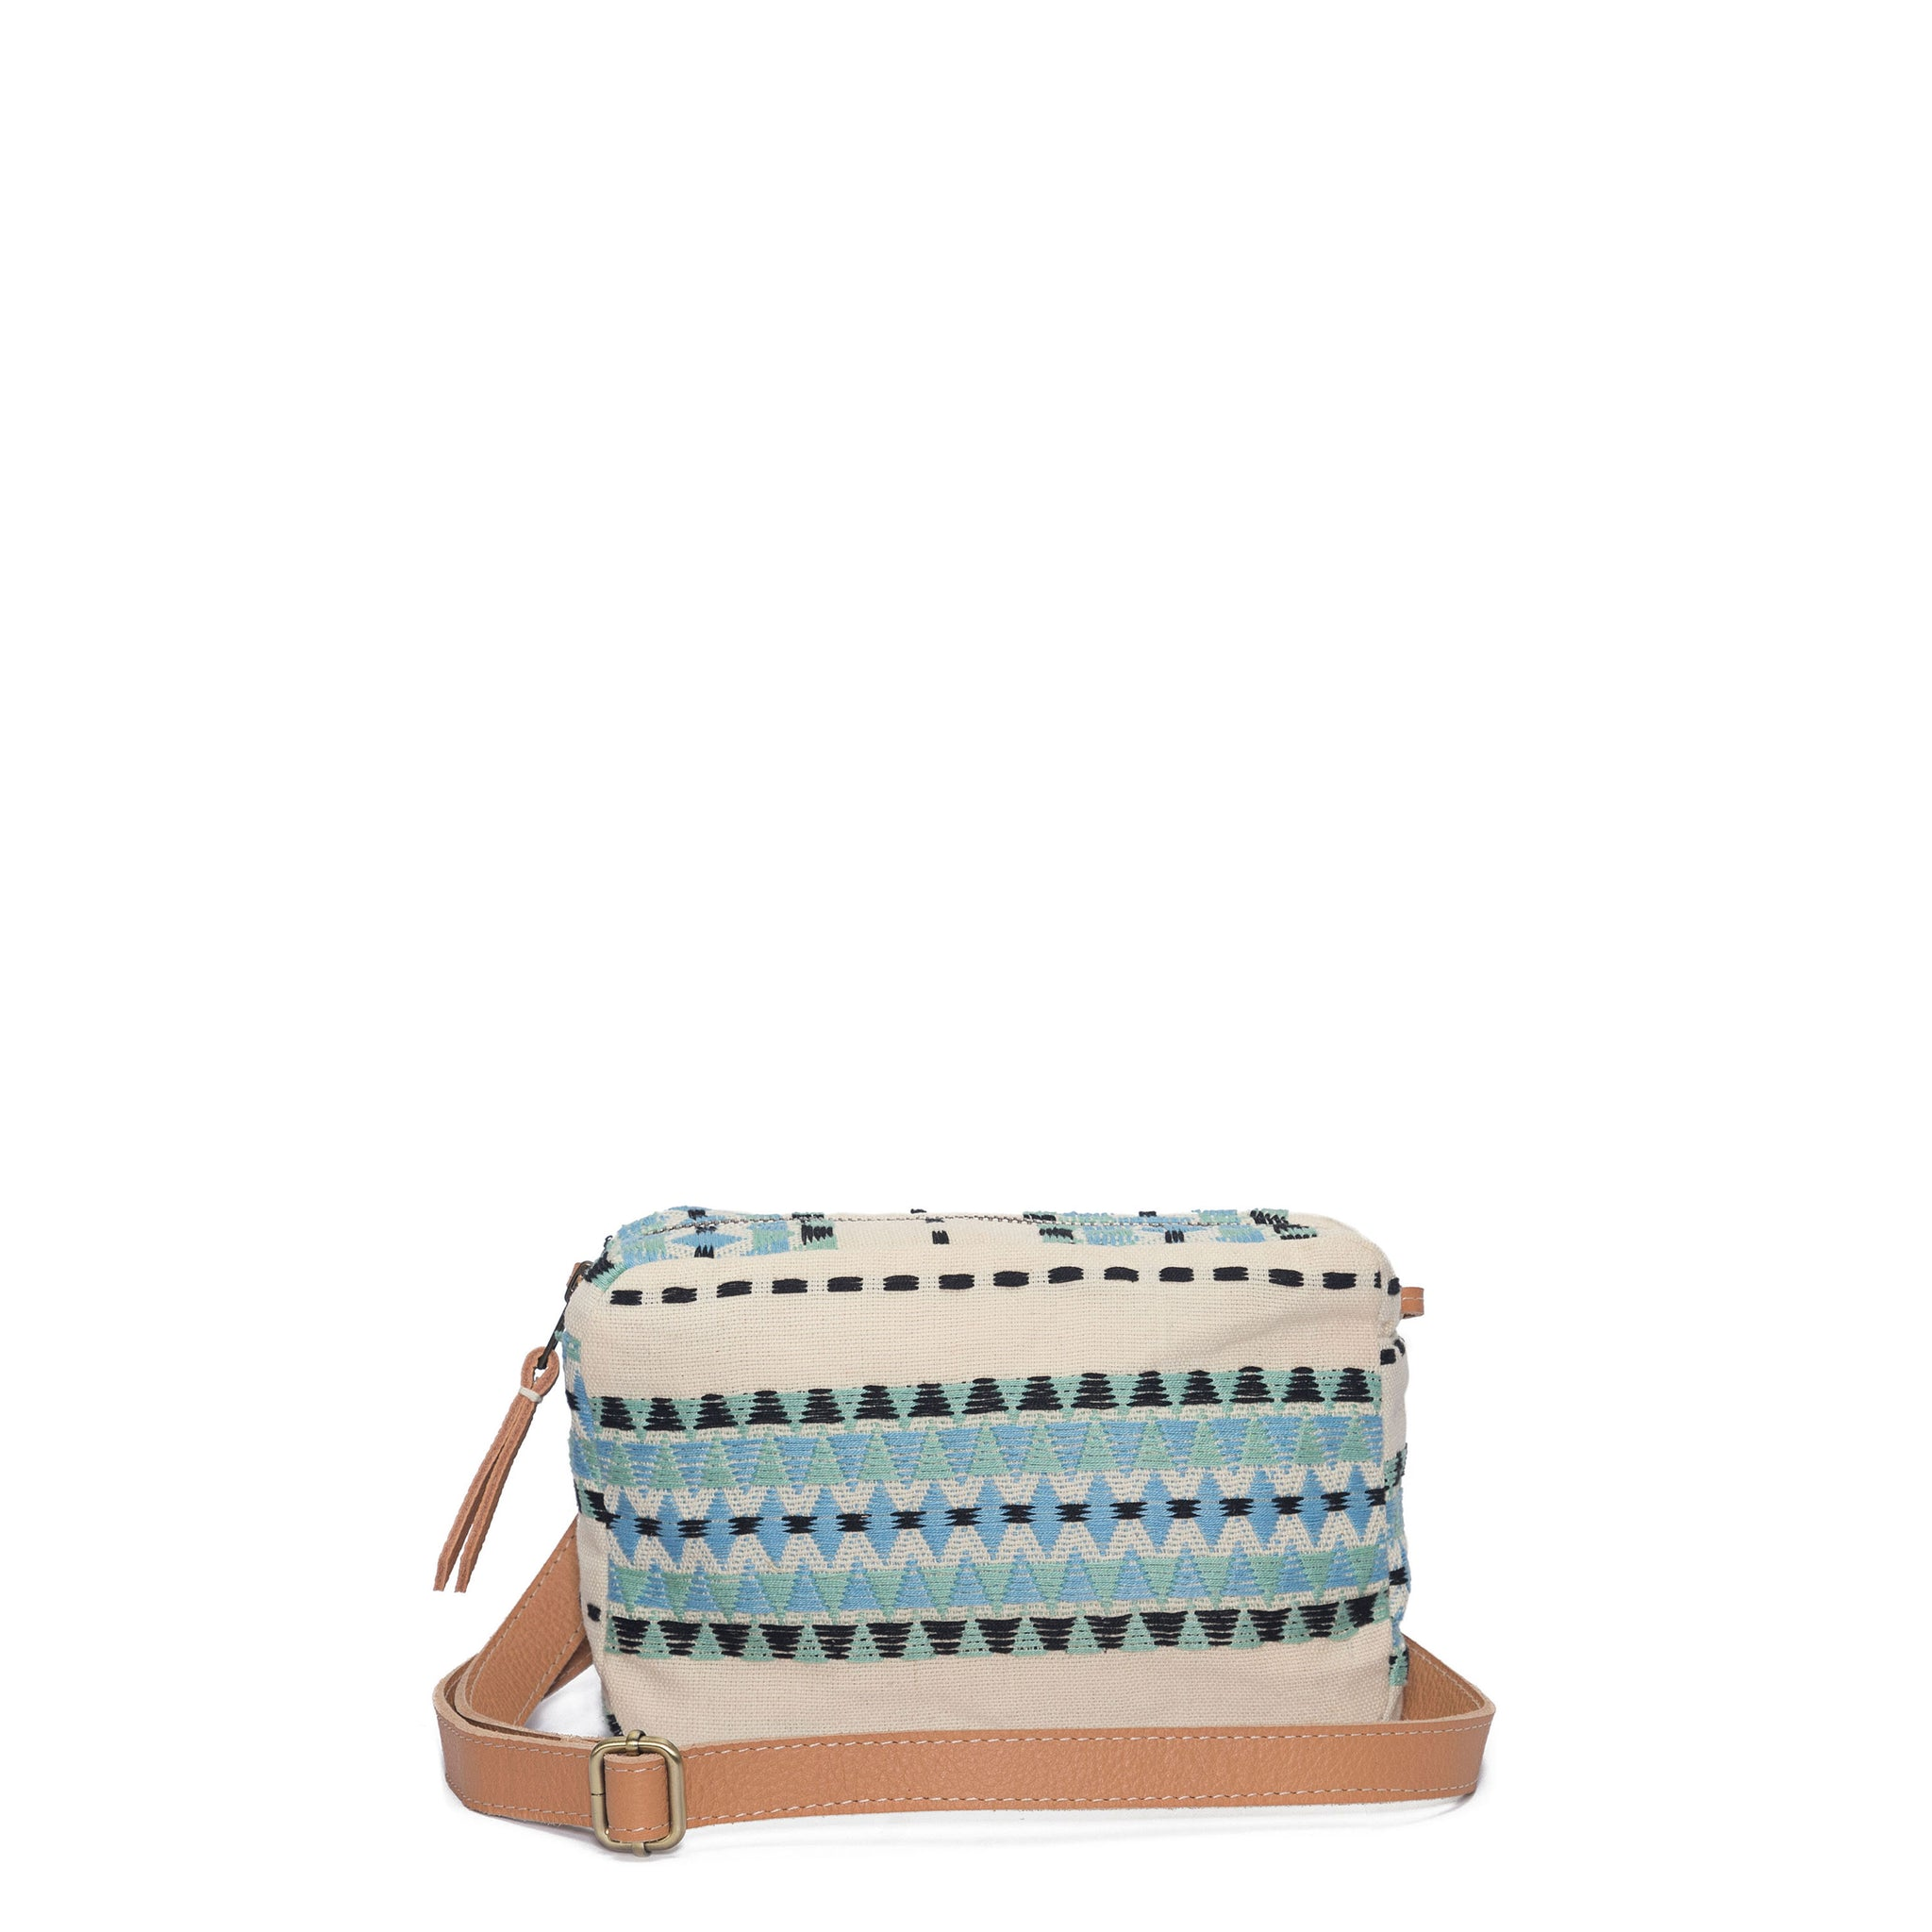 Hand woven Sandra Convertible Belt Bag - Ethical Shopping at Mercado Global